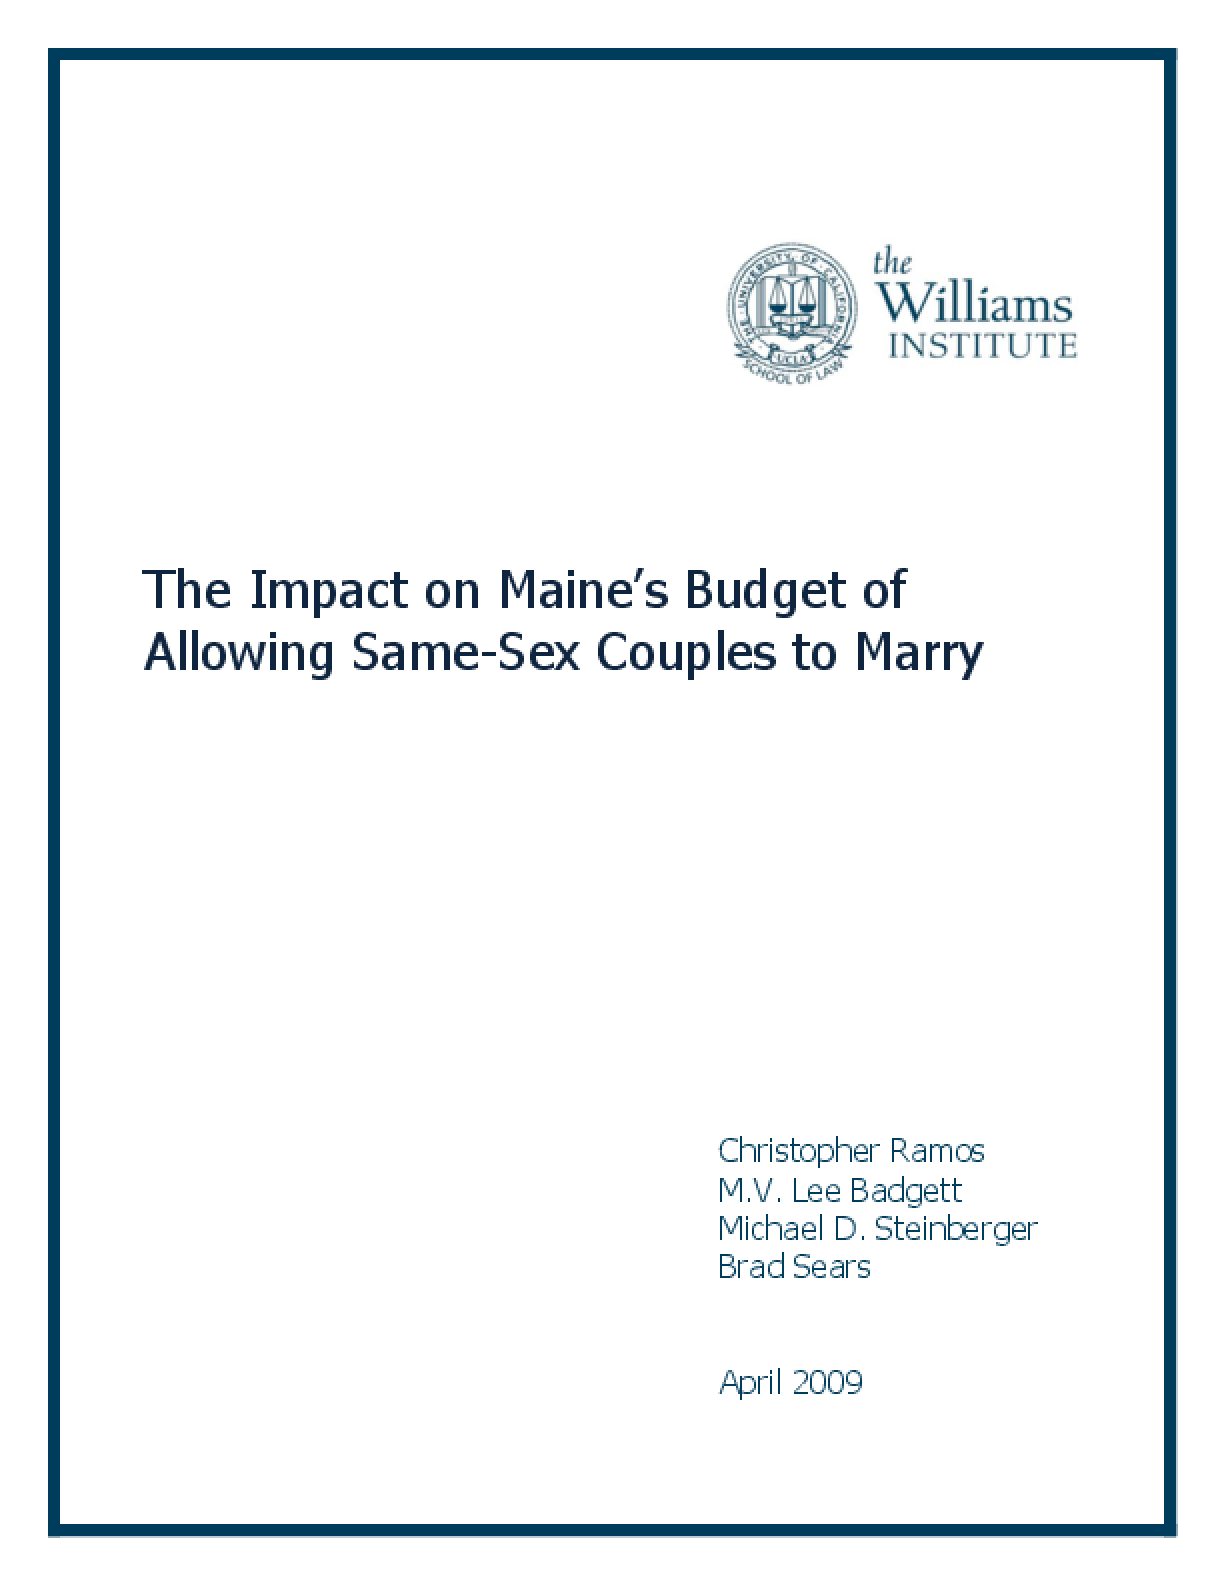 The Impact on Maine's Budget of Allowing Same-Sex Couples to Marry